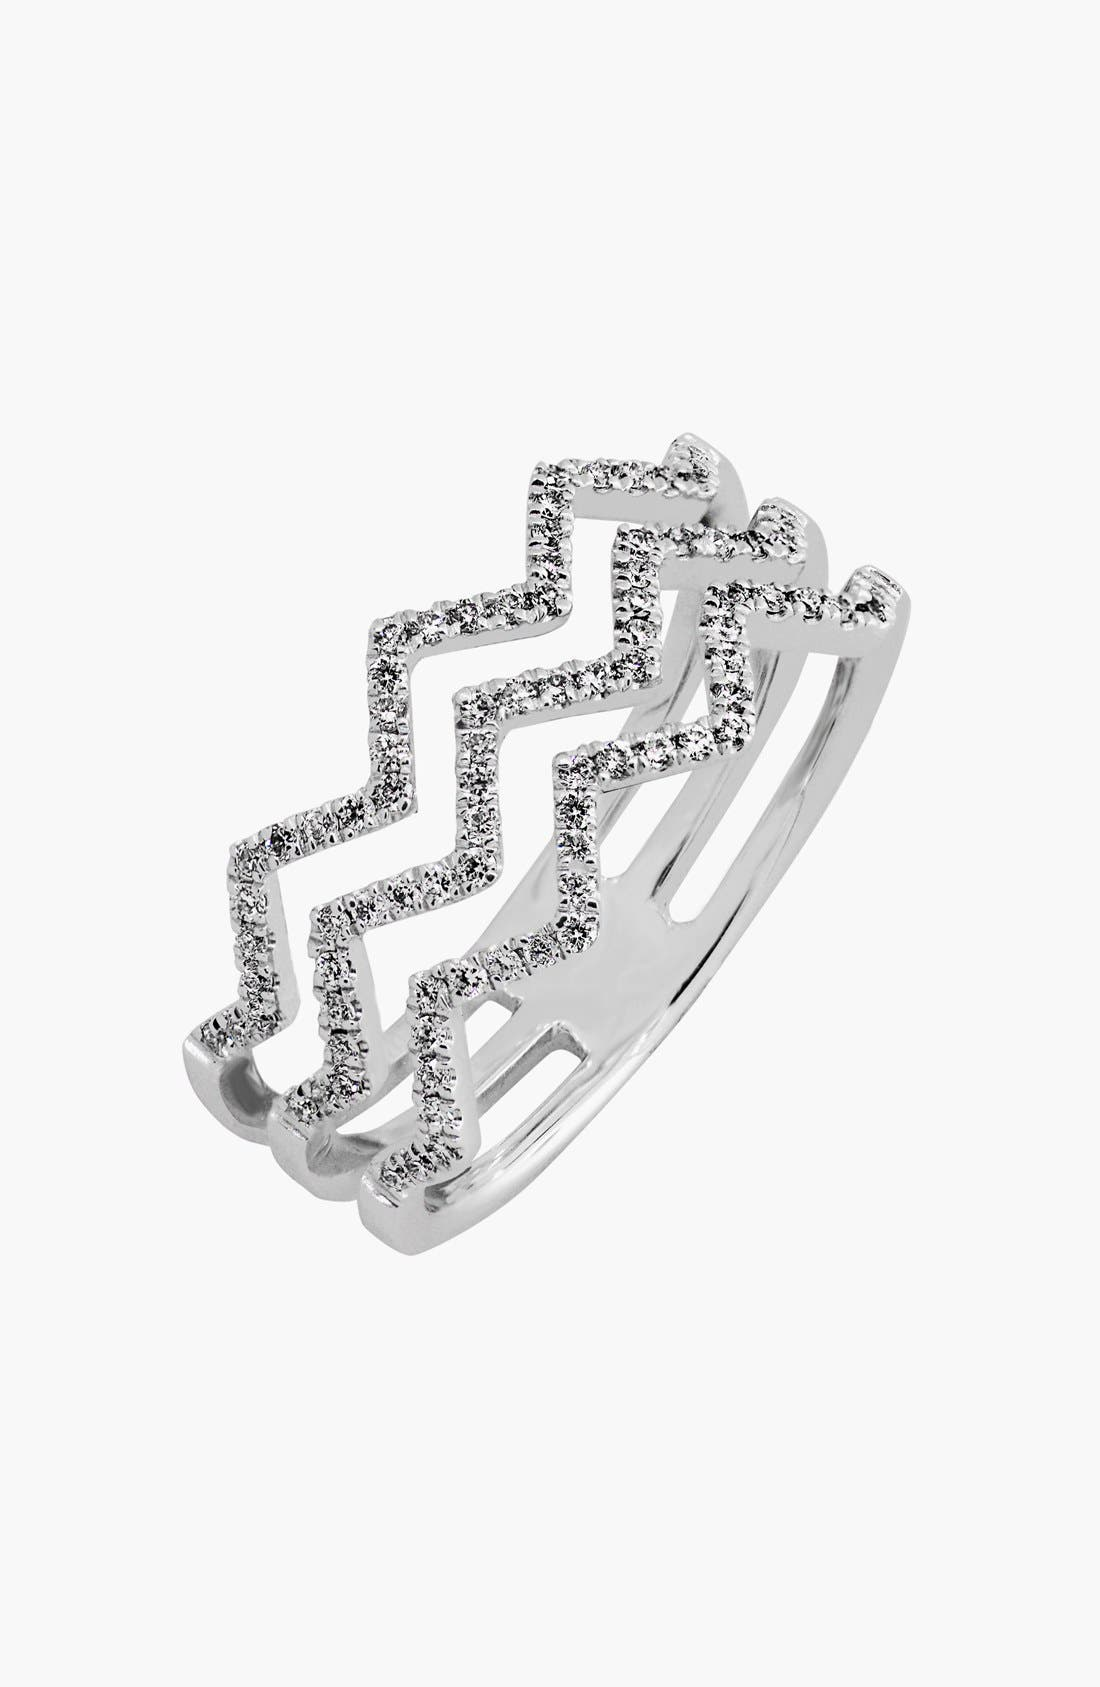 Alternate Image 1 Selected - Bony Levy 'Prism' 3-Row Diamond Ring (Limited Edition) (Nordstrom Exclusive)